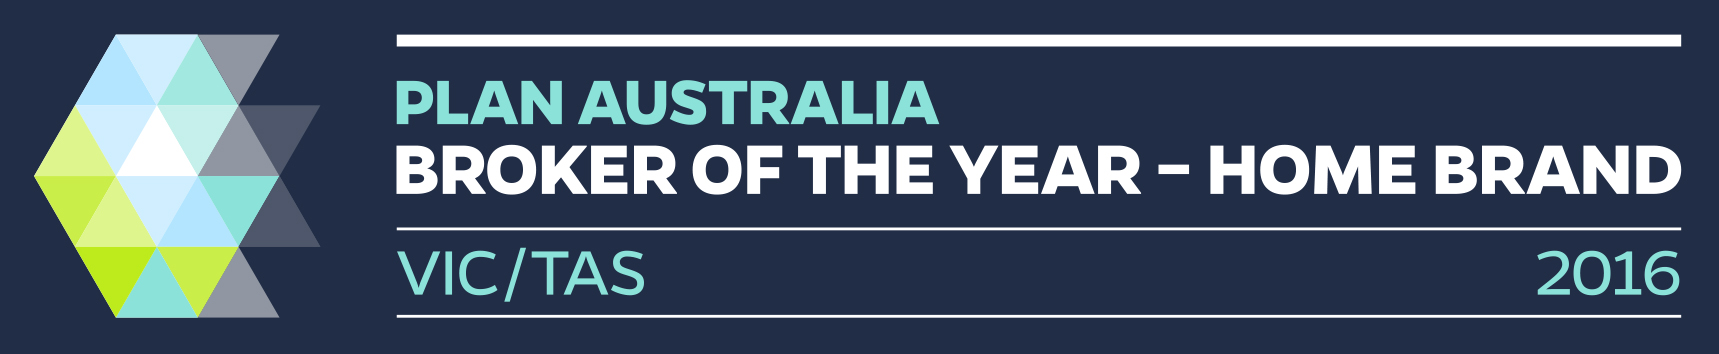 2016 Home Brand Broker of the Year - Plan Australia